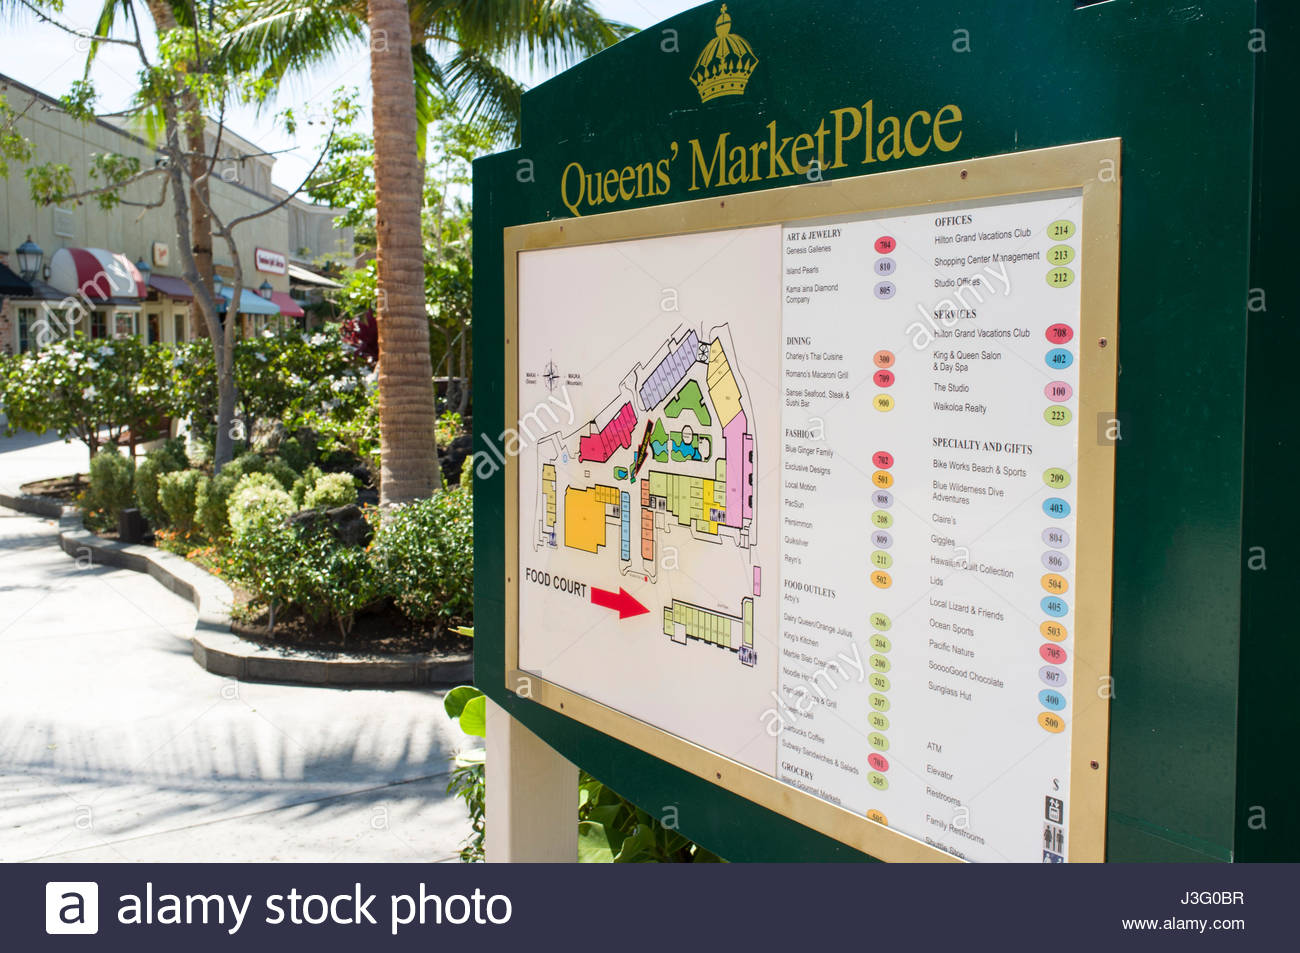 Map of the Queens MarketPlace Waikoloa Beach Resort South